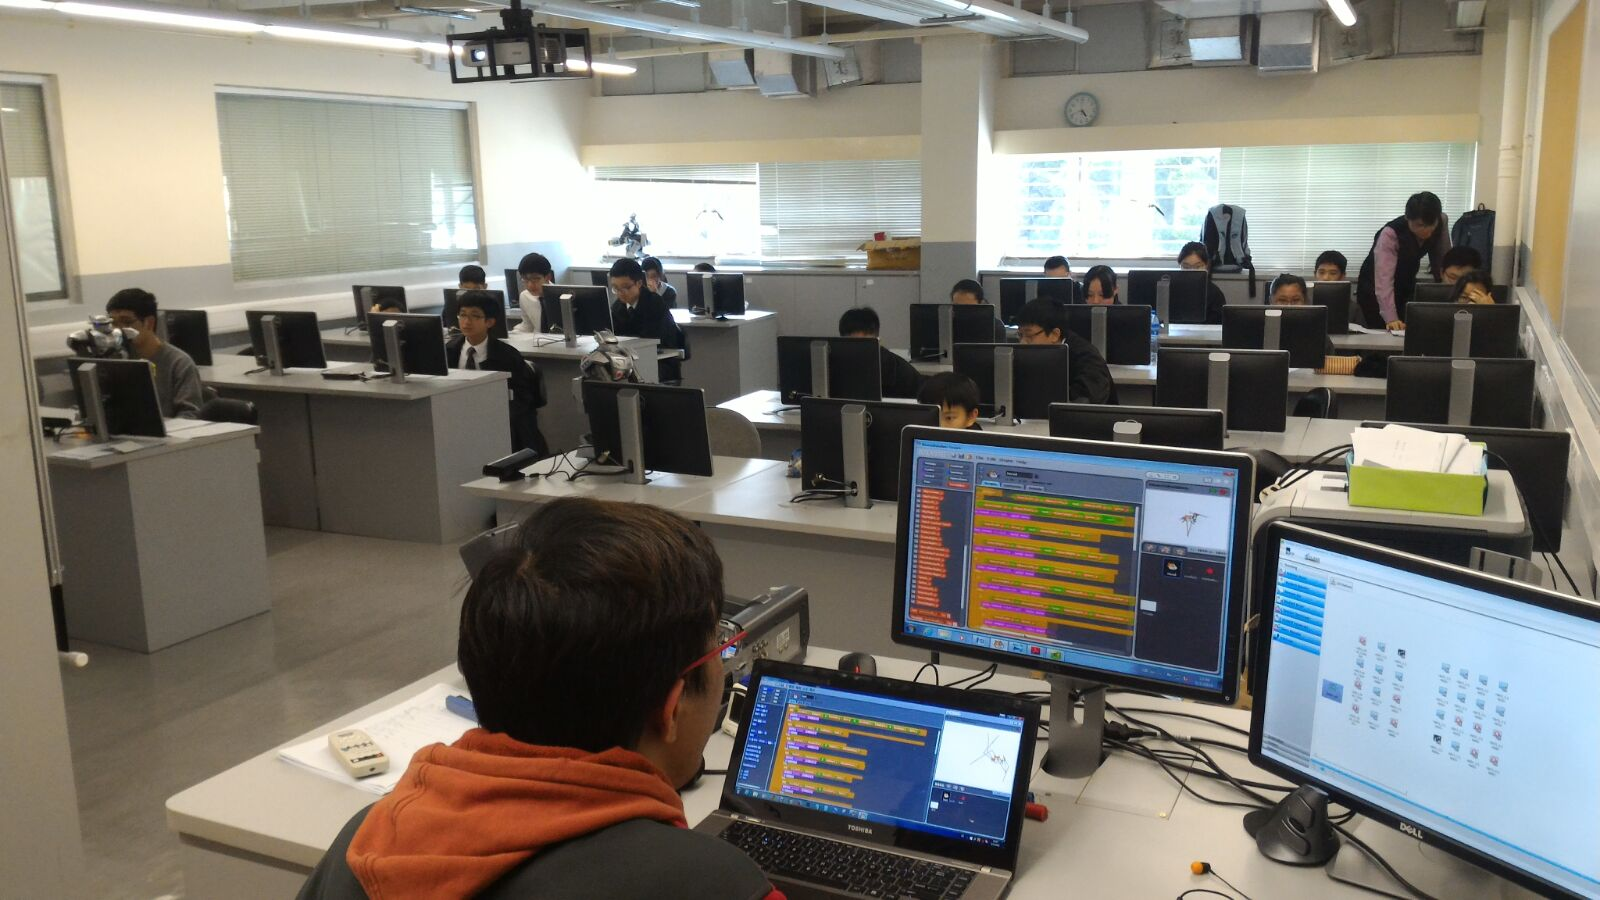 Robot Workshop@ Tseung Kwan O Govern